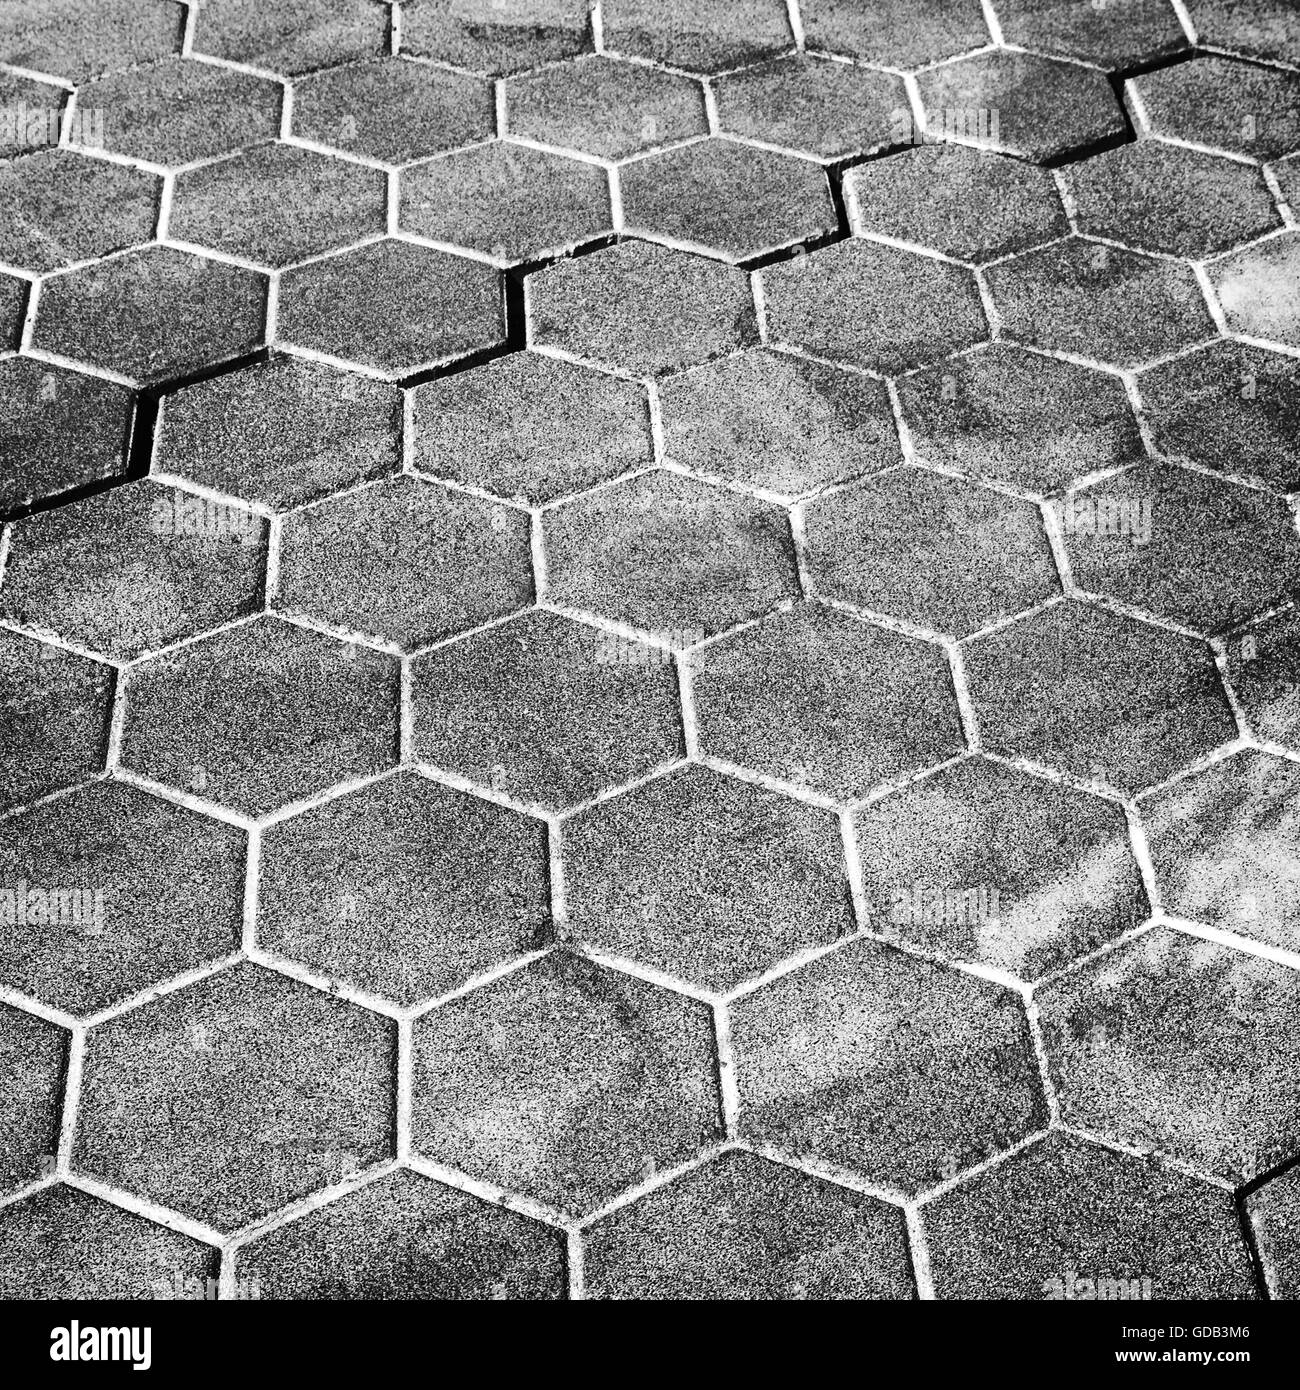 1366x768 grey honeycomb pattern - photo #24